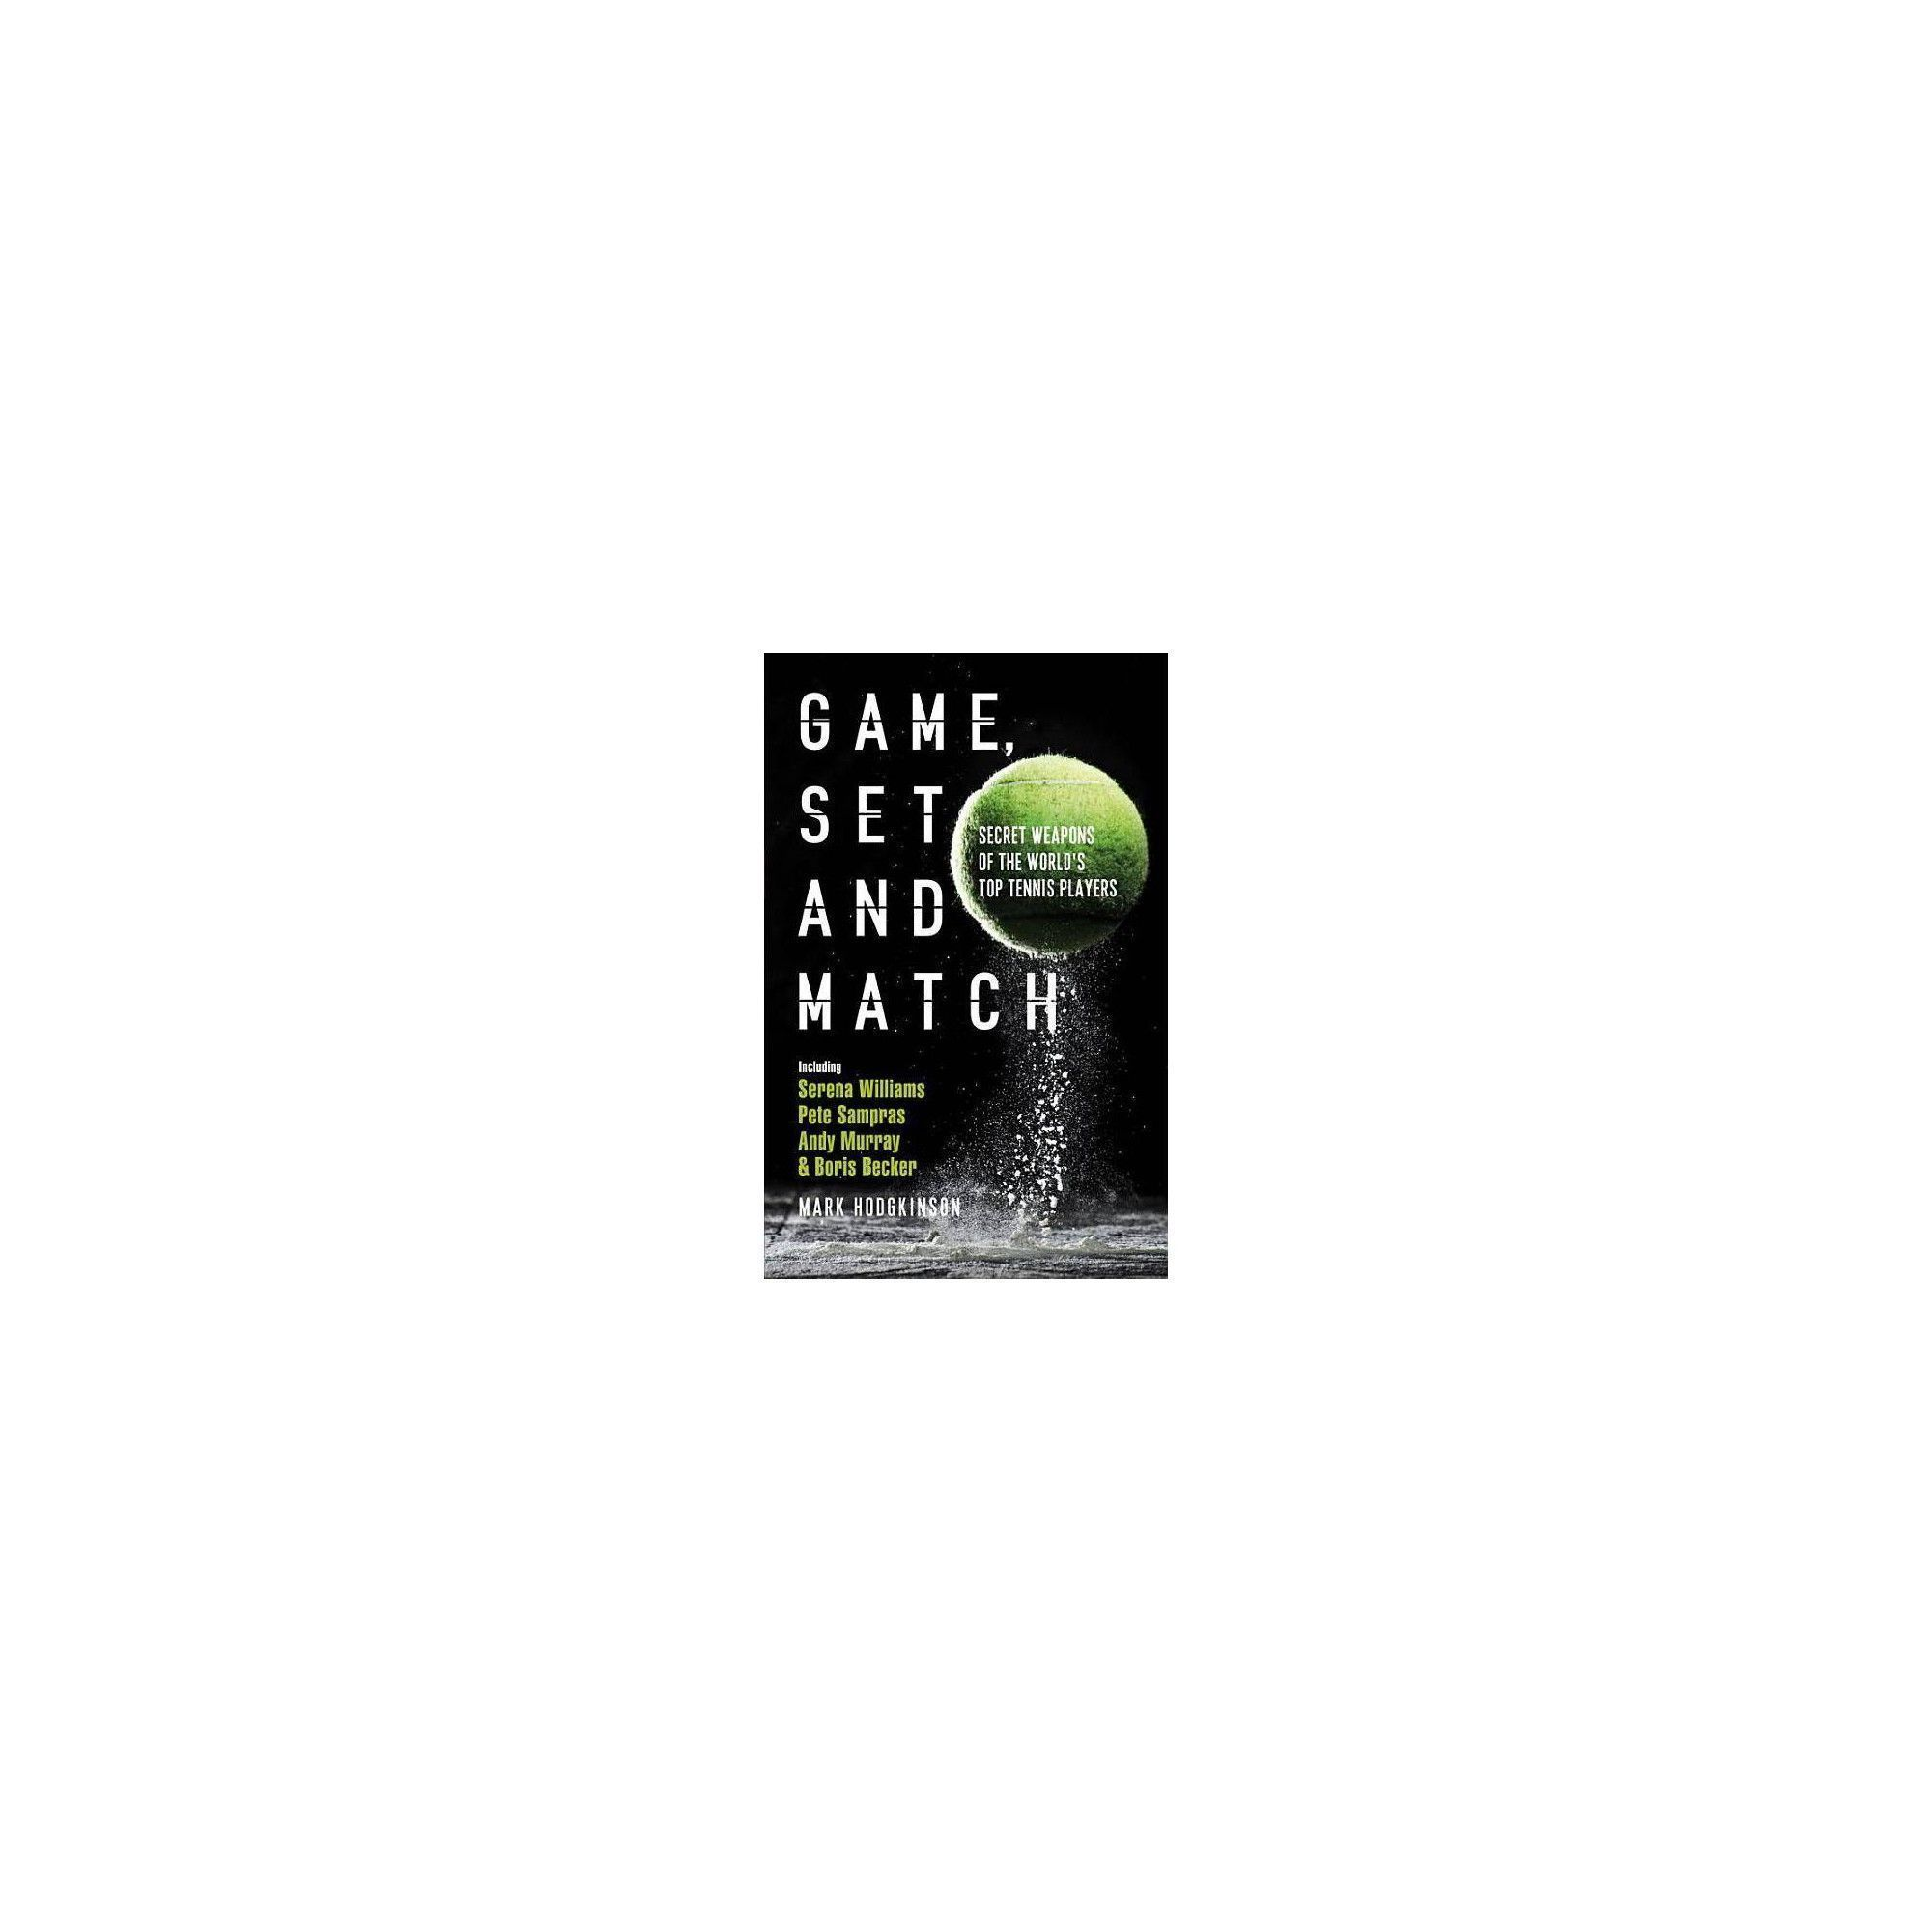 Game, Set and Match - by Mark Hodgkinson (Paperback) #howtodisguiseyourself Game, Set and Match - by Mark Hodgkinson (Paperback) #howtodisguiseyourself Game, Set and Match - by Mark Hodgkinson (Paperback) #howtodisguiseyourself Game, Set and Match - by Mark Hodgkinson (Paperback) #howtodisguiseyourself Game, Set and Match - by Mark Hodgkinson (Paperback) #howtodisguiseyourself Game, Set and Match - by Mark Hodgkinson (Paperback) #howtodisguiseyourself Game, Set and Match - by Mark Hodgkinson (Pa #howtodisguiseyourself